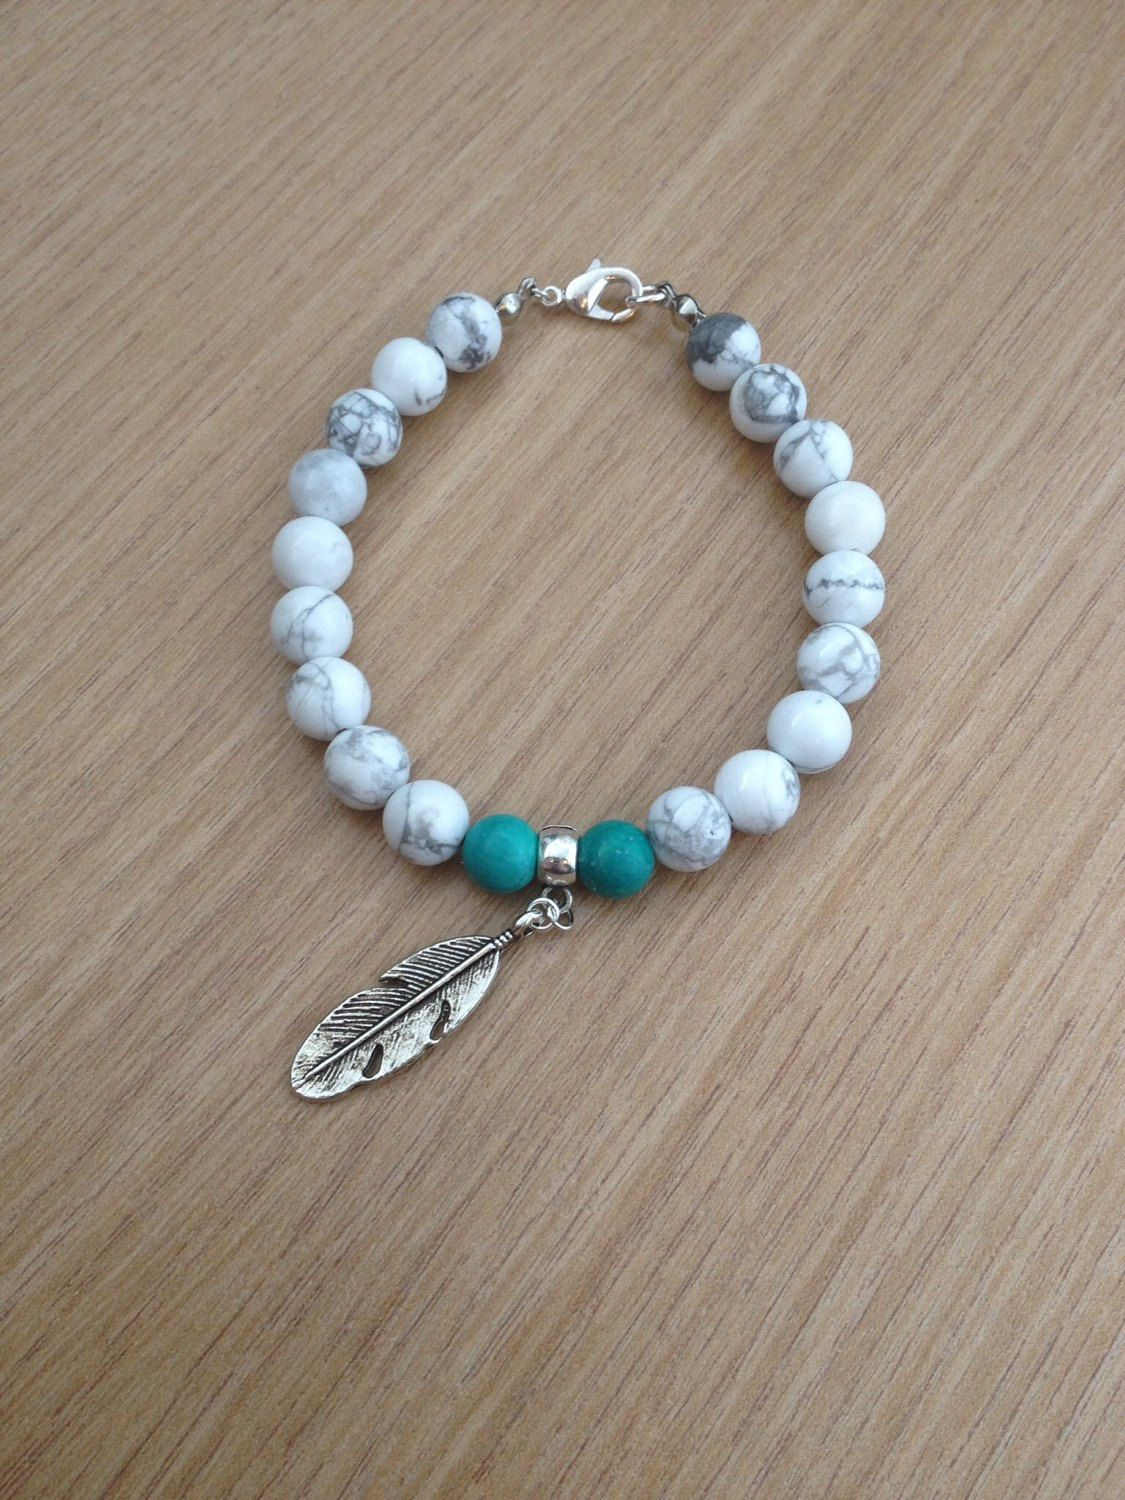 Boho beaded bracelet with howlite, turquoise and a feather charm, natural stone, handmade